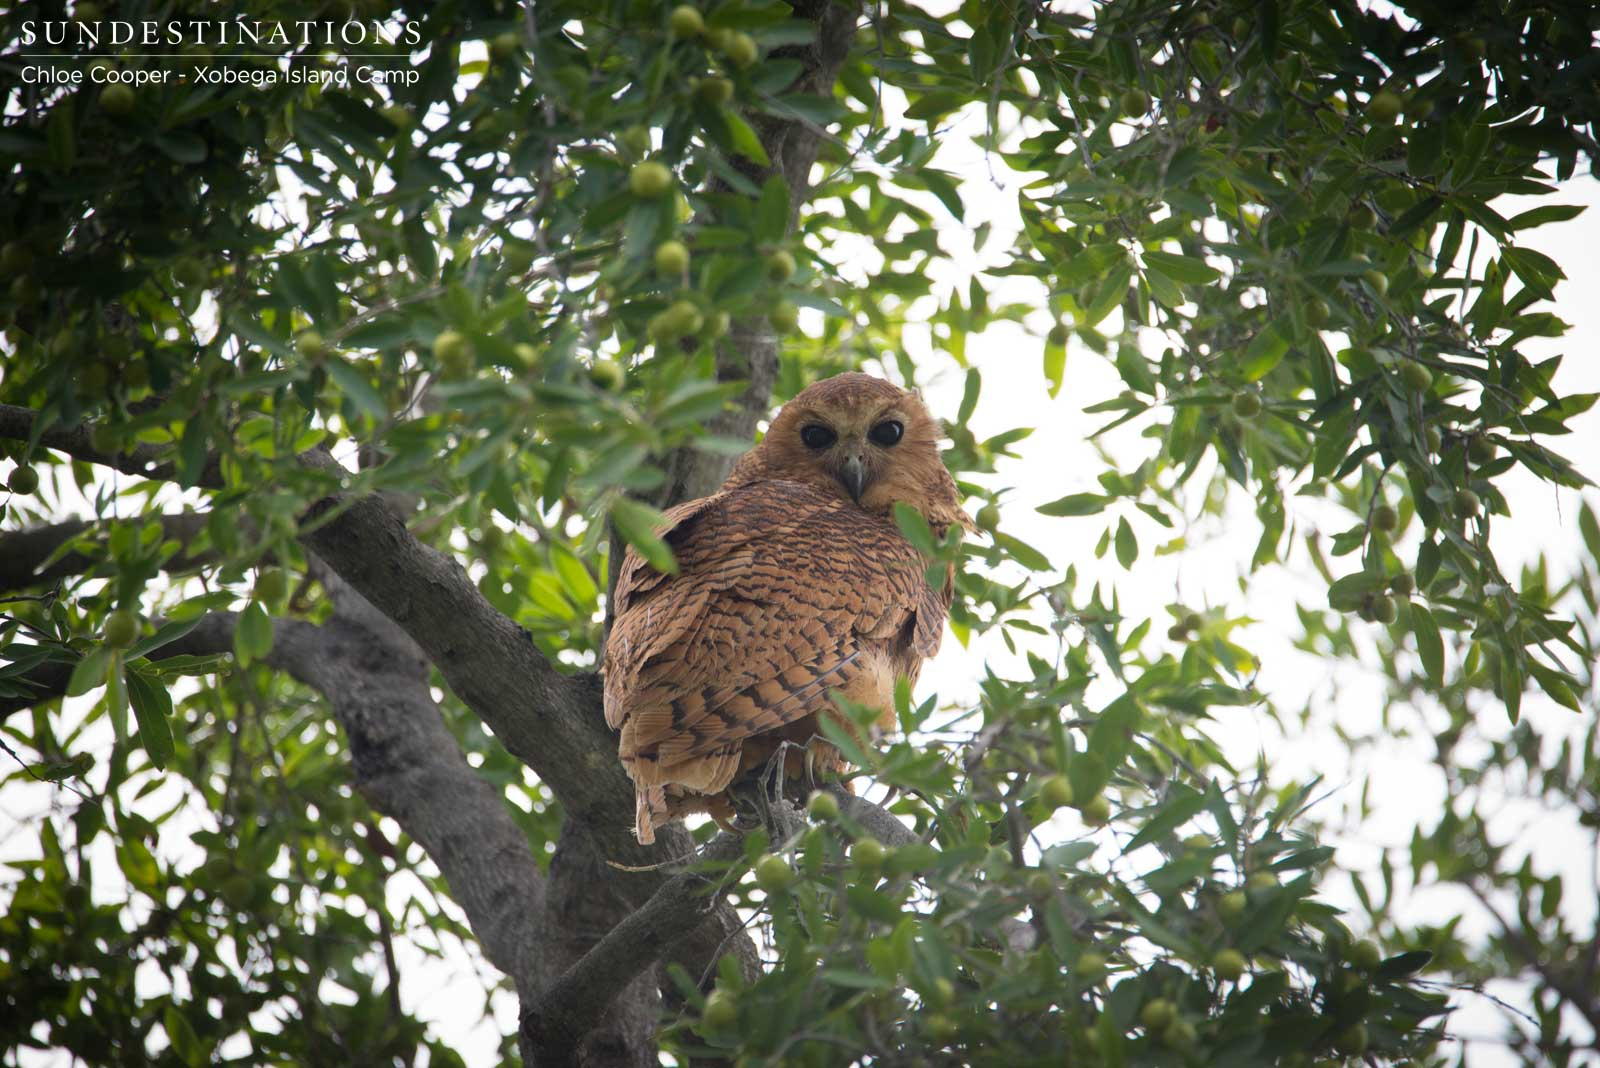 Pel's Fishing Owl Nesting at Xobega Island Camp